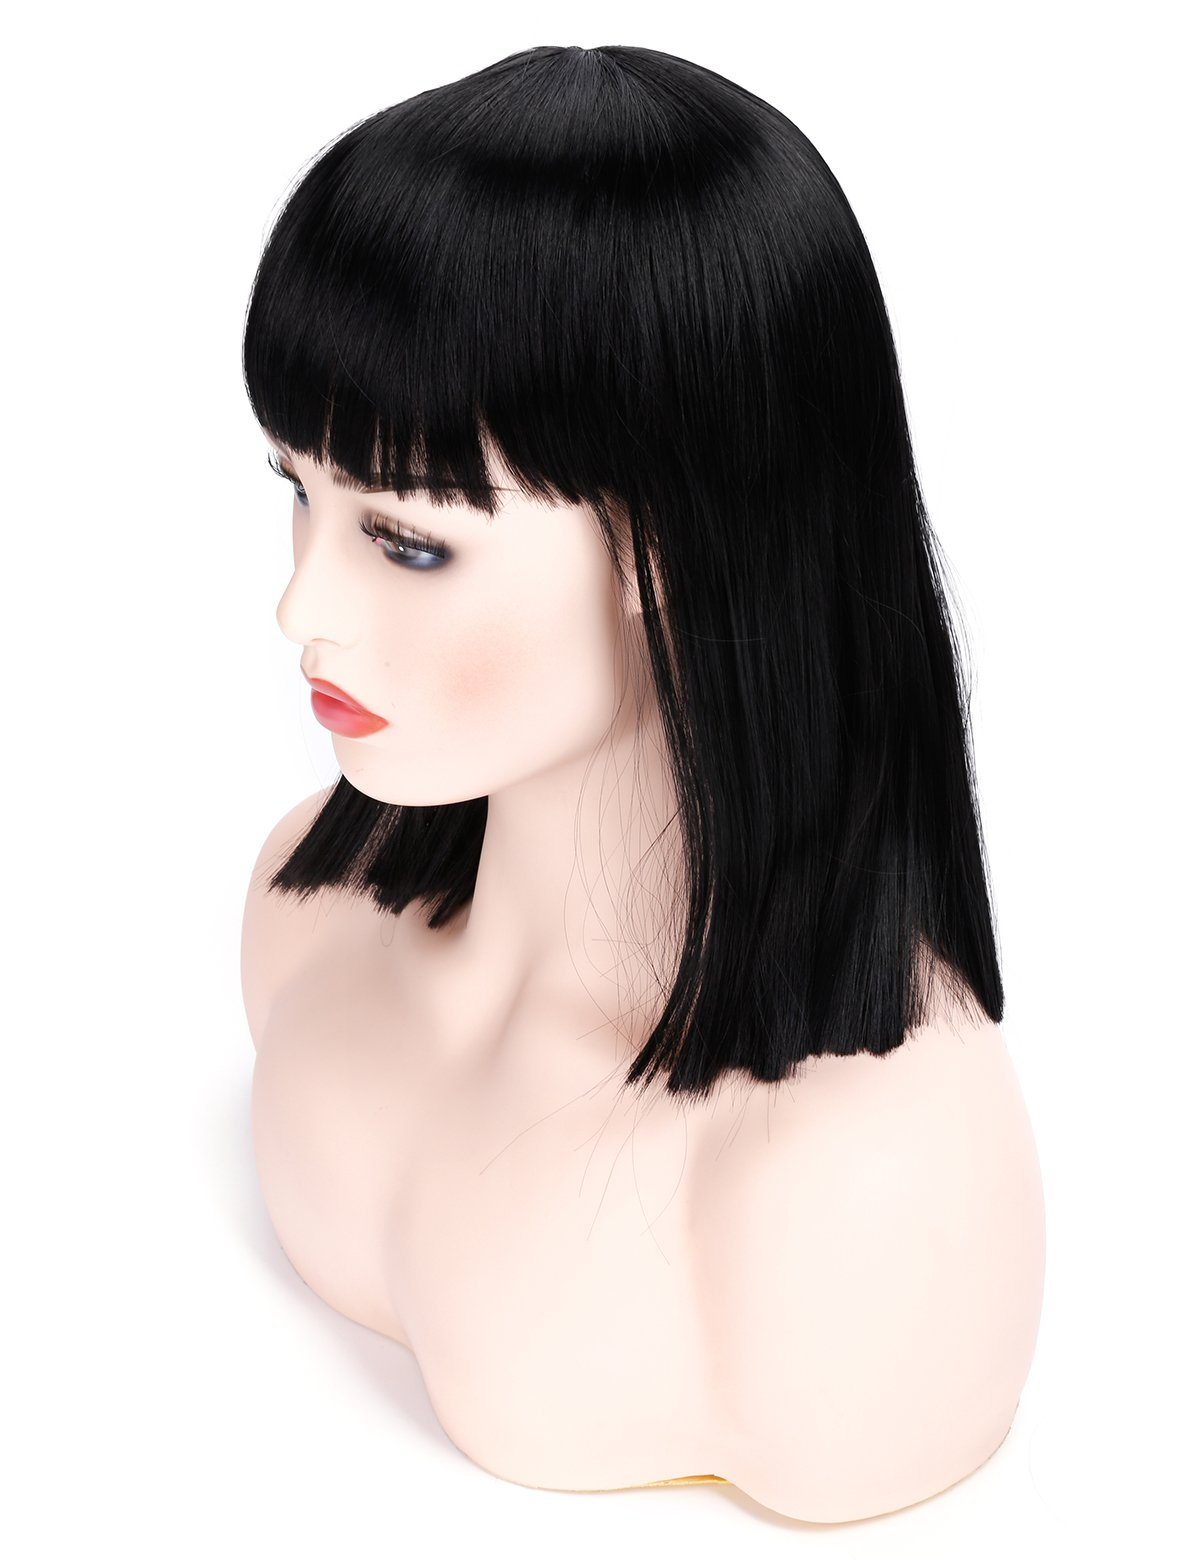 Morvally Short Straight Bob Wig with Flat Bangs Natural Looking Heat Resistant Hair Cosplay Costume Wigs (14 inches Natural Black) by morvally